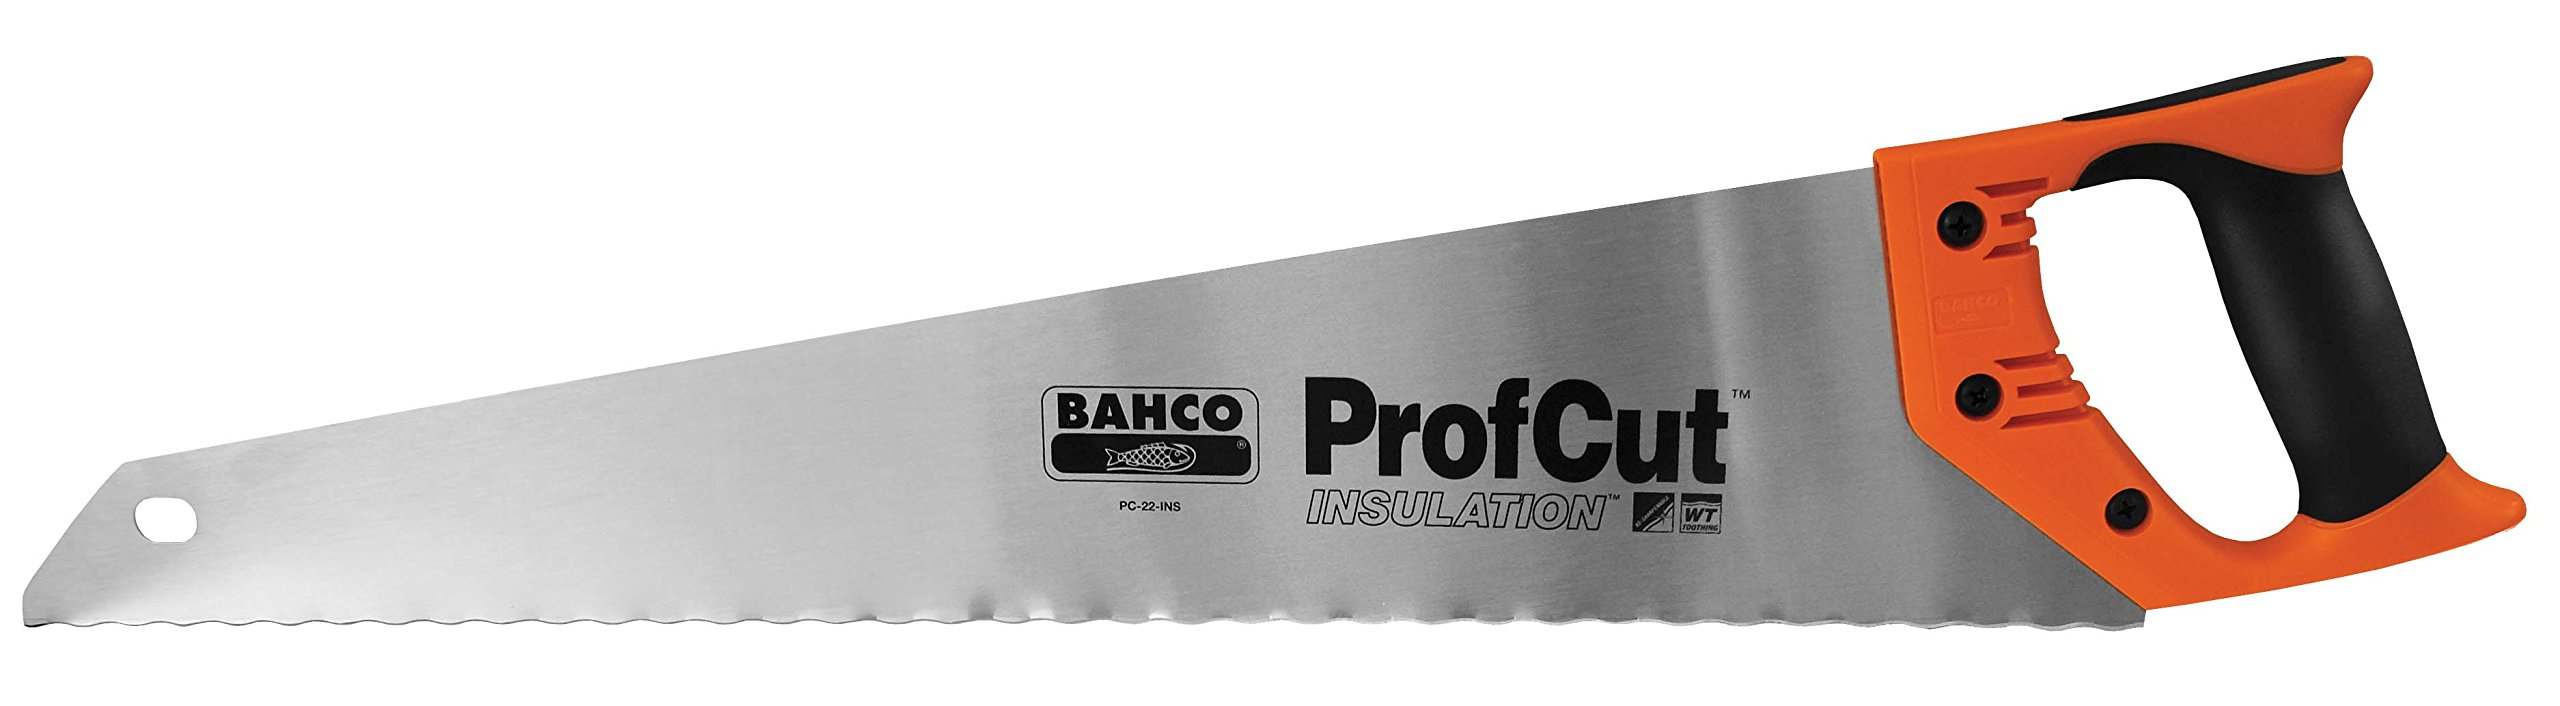 Bahco PC-22-INS Insulation Saw